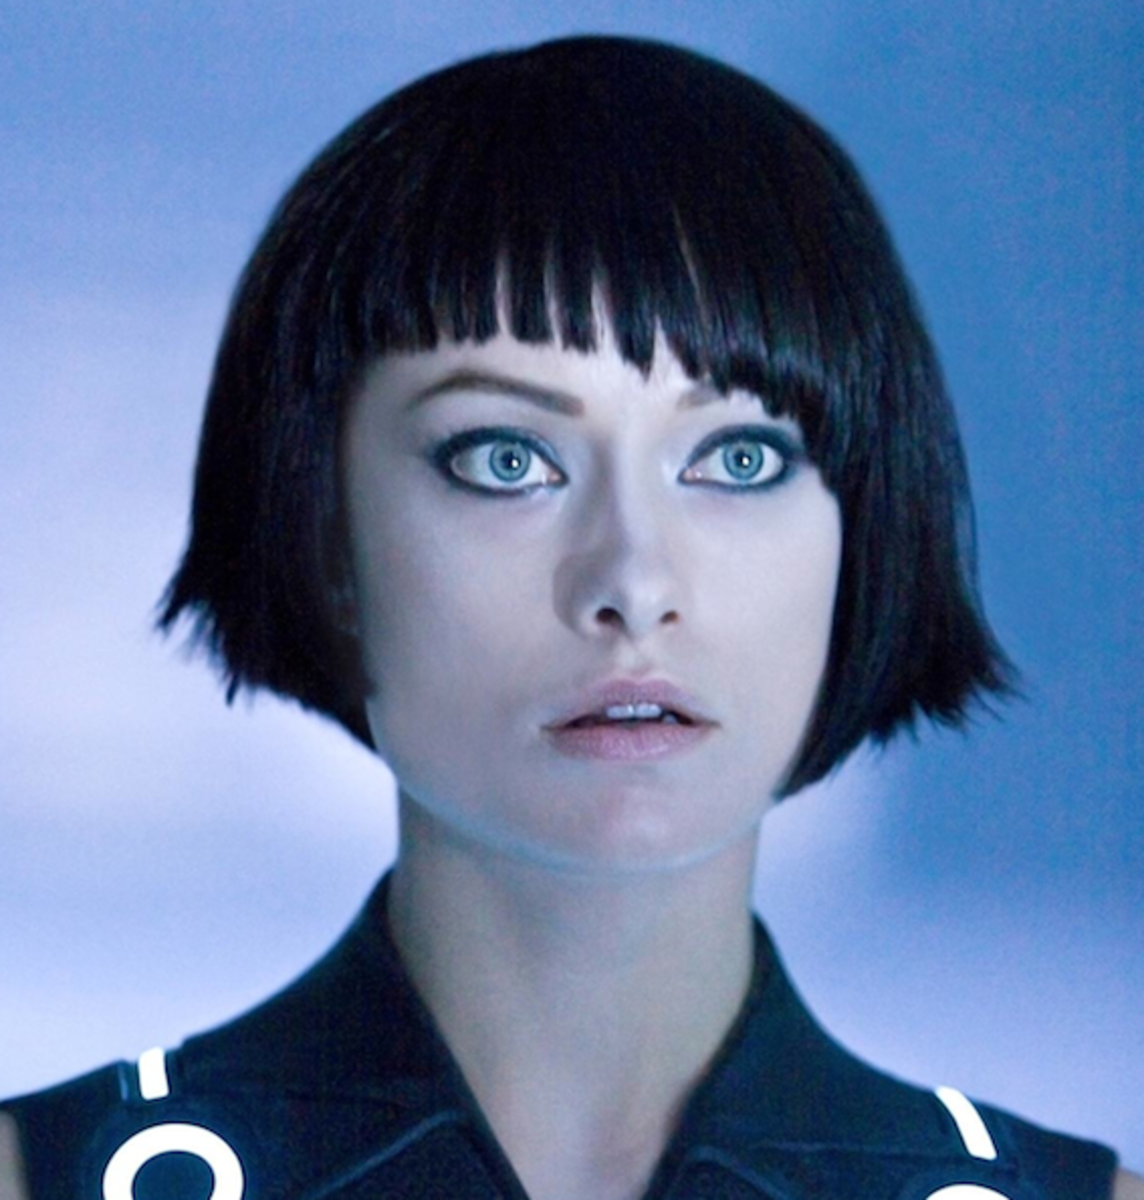 Olivia Wilde us just so stunning in Tron. Look at her. Just look at her.